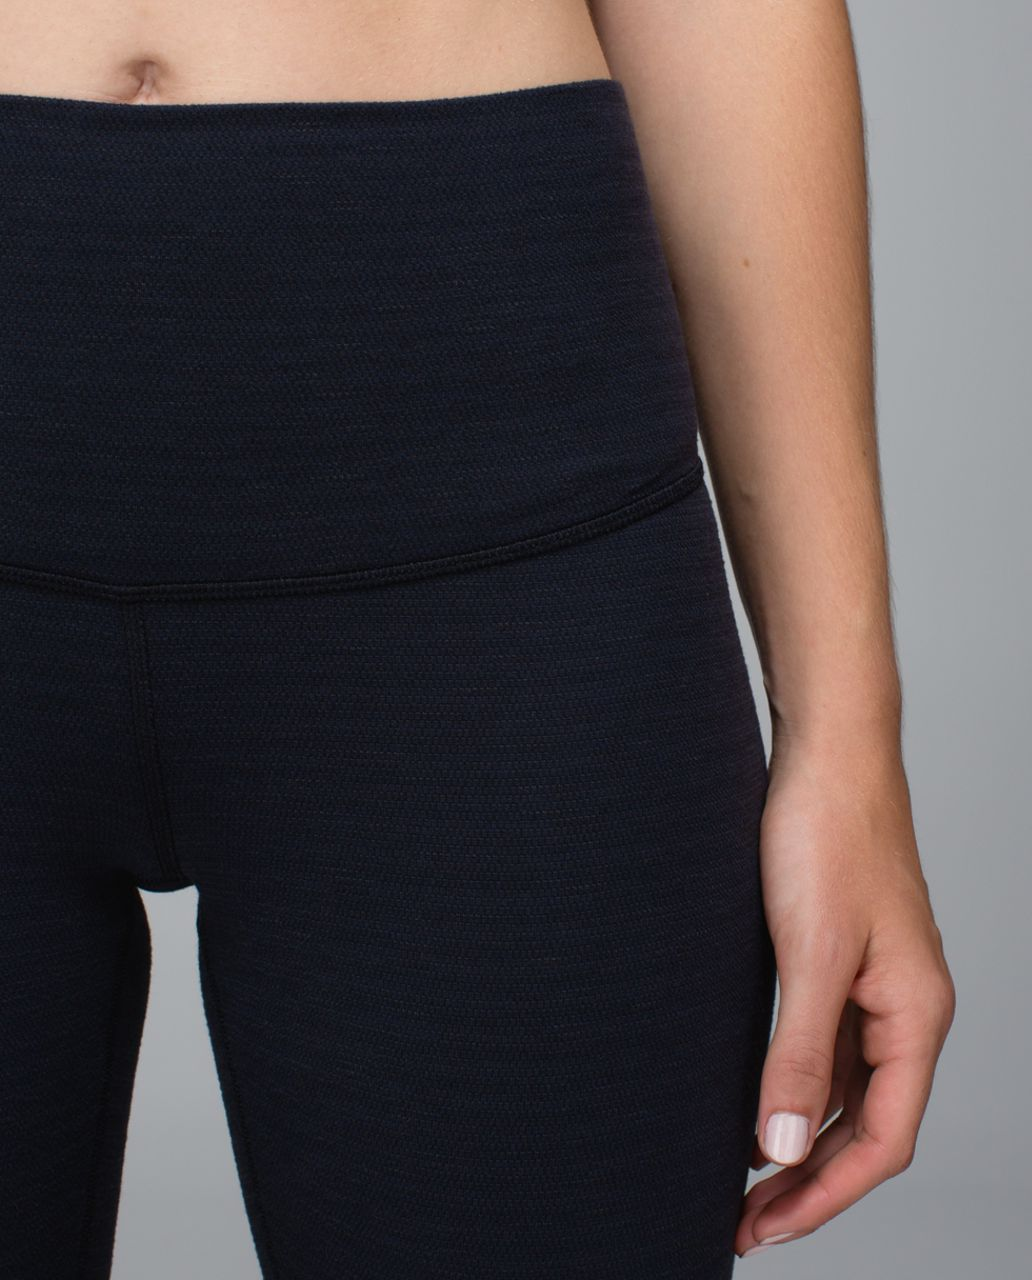 Lululemon Wunder Under Pant (Roll Down) - Luon Pique Inkwell Black